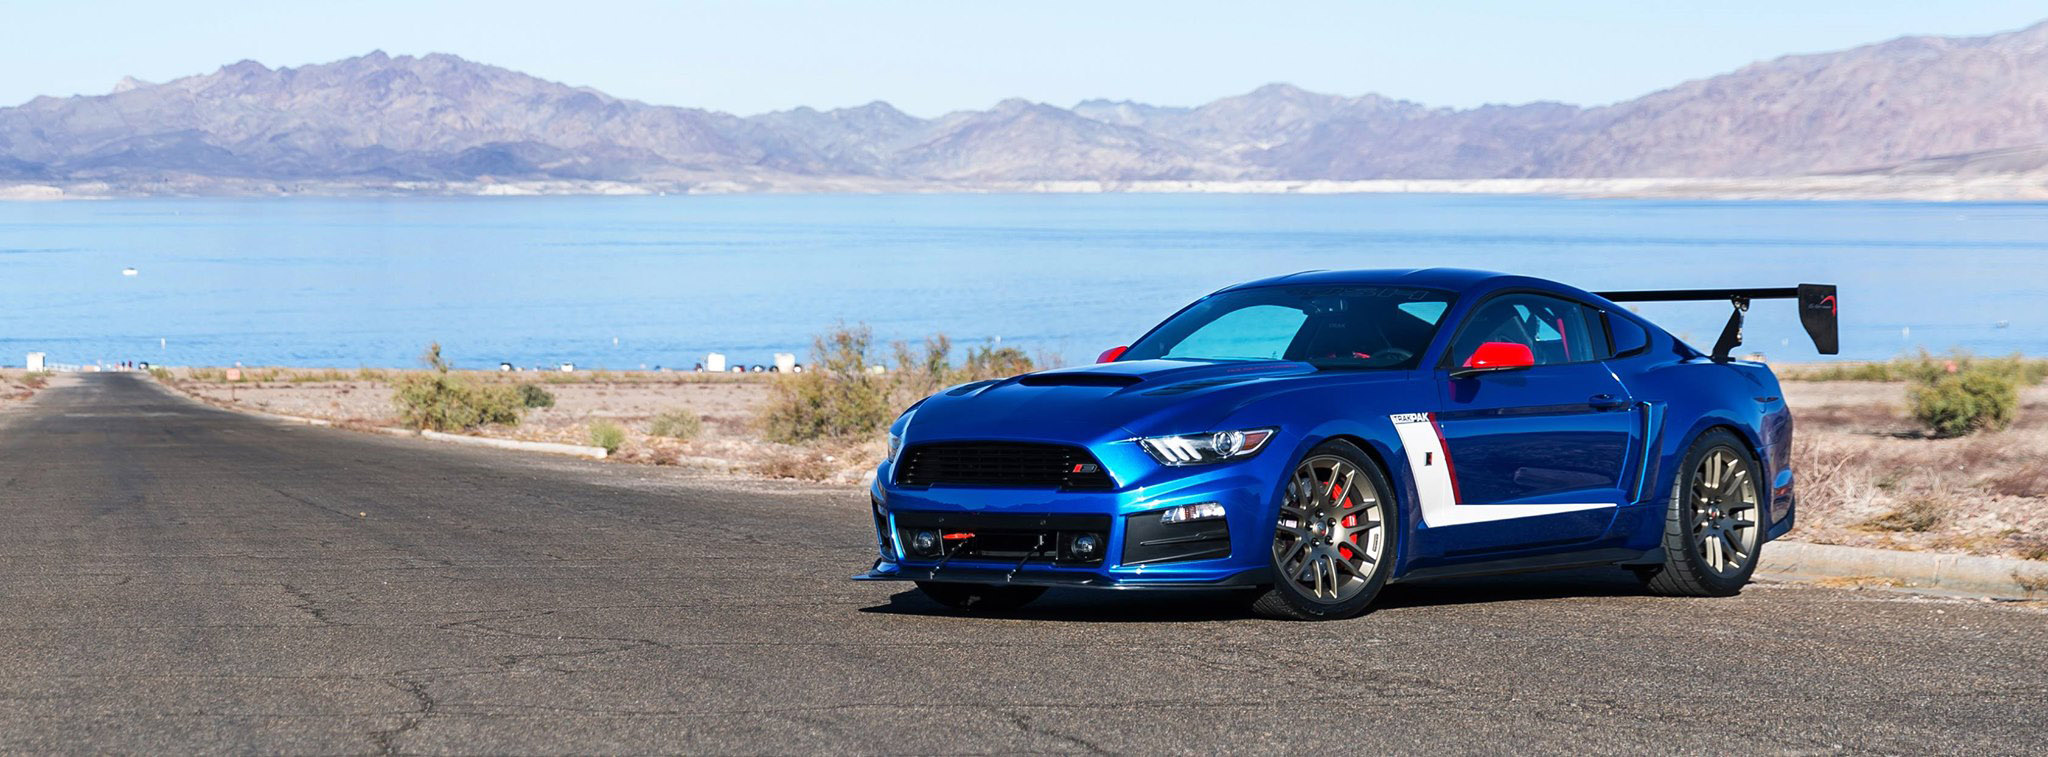 2015 roush performance ford mustang stage 3 muscle cars. Black Bedroom Furniture Sets. Home Design Ideas